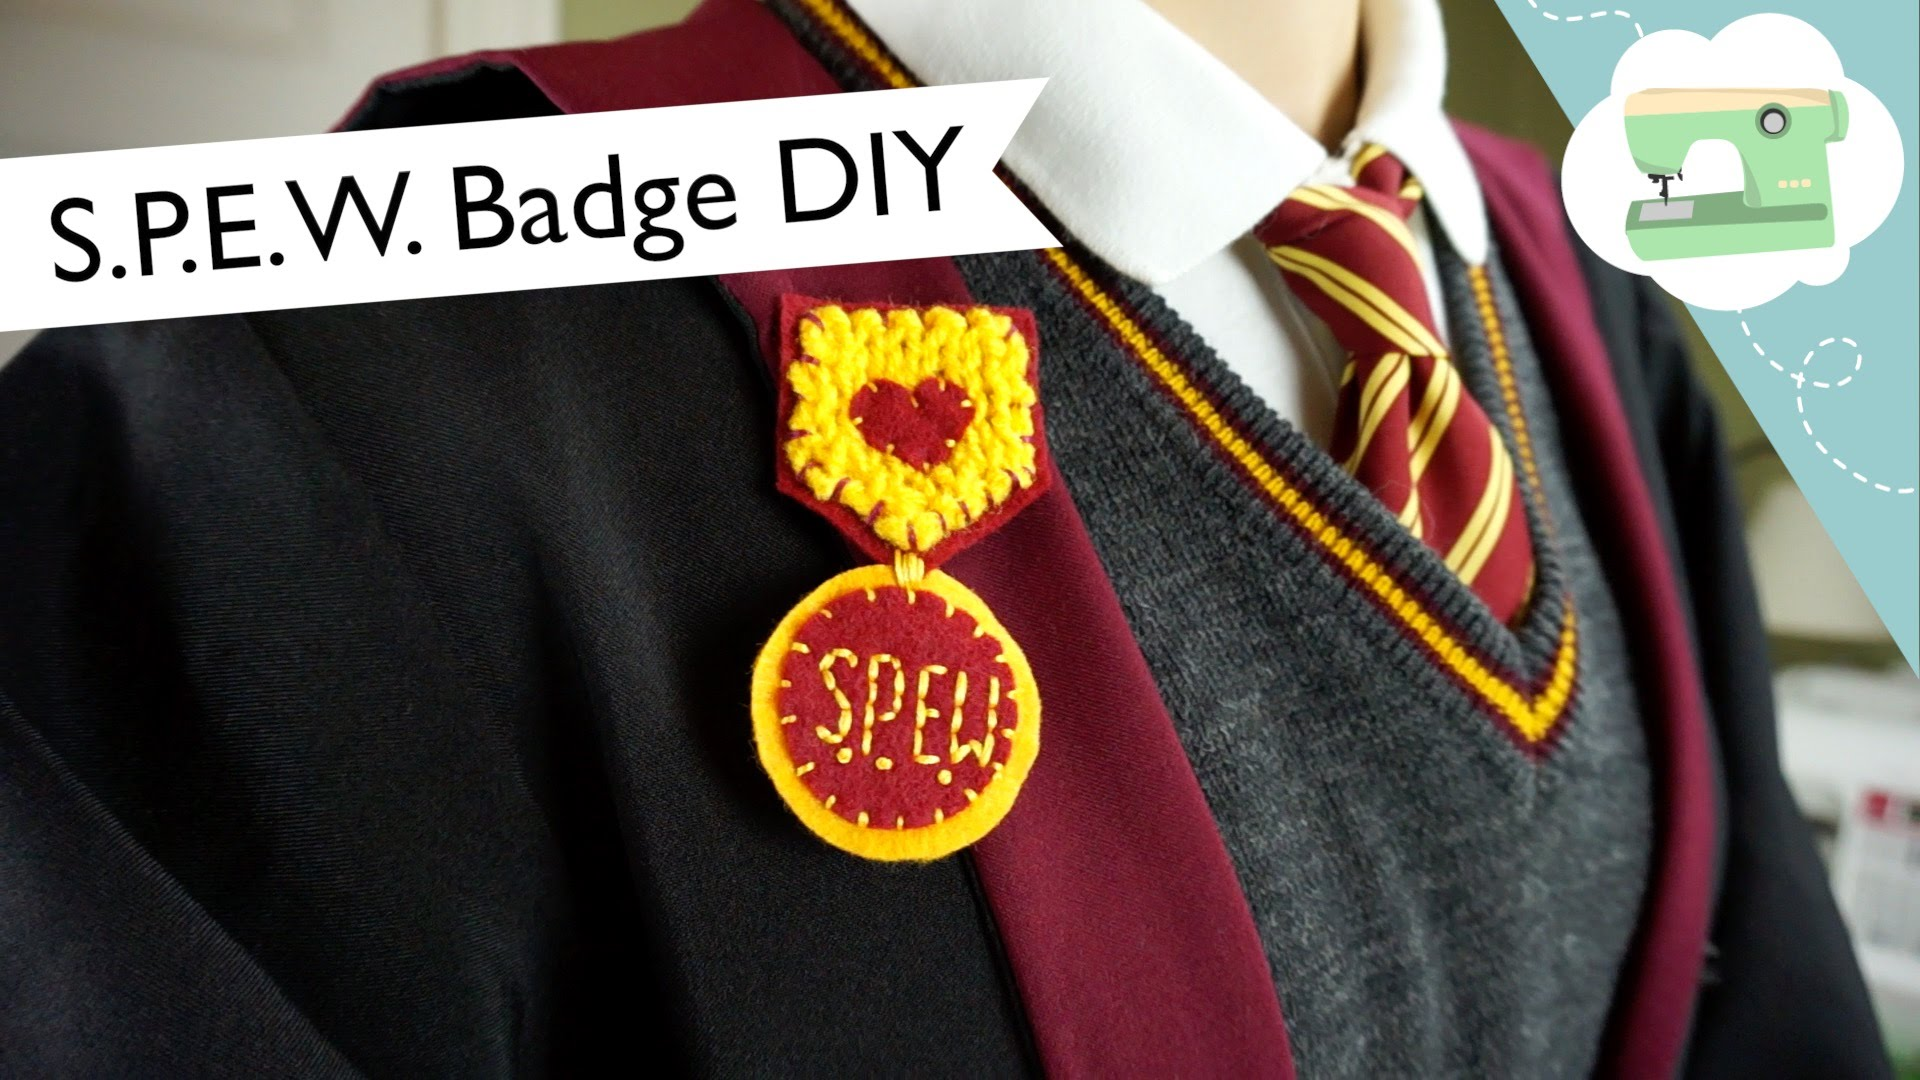 Make Hermione Granger's S.P.E.W. Badge!